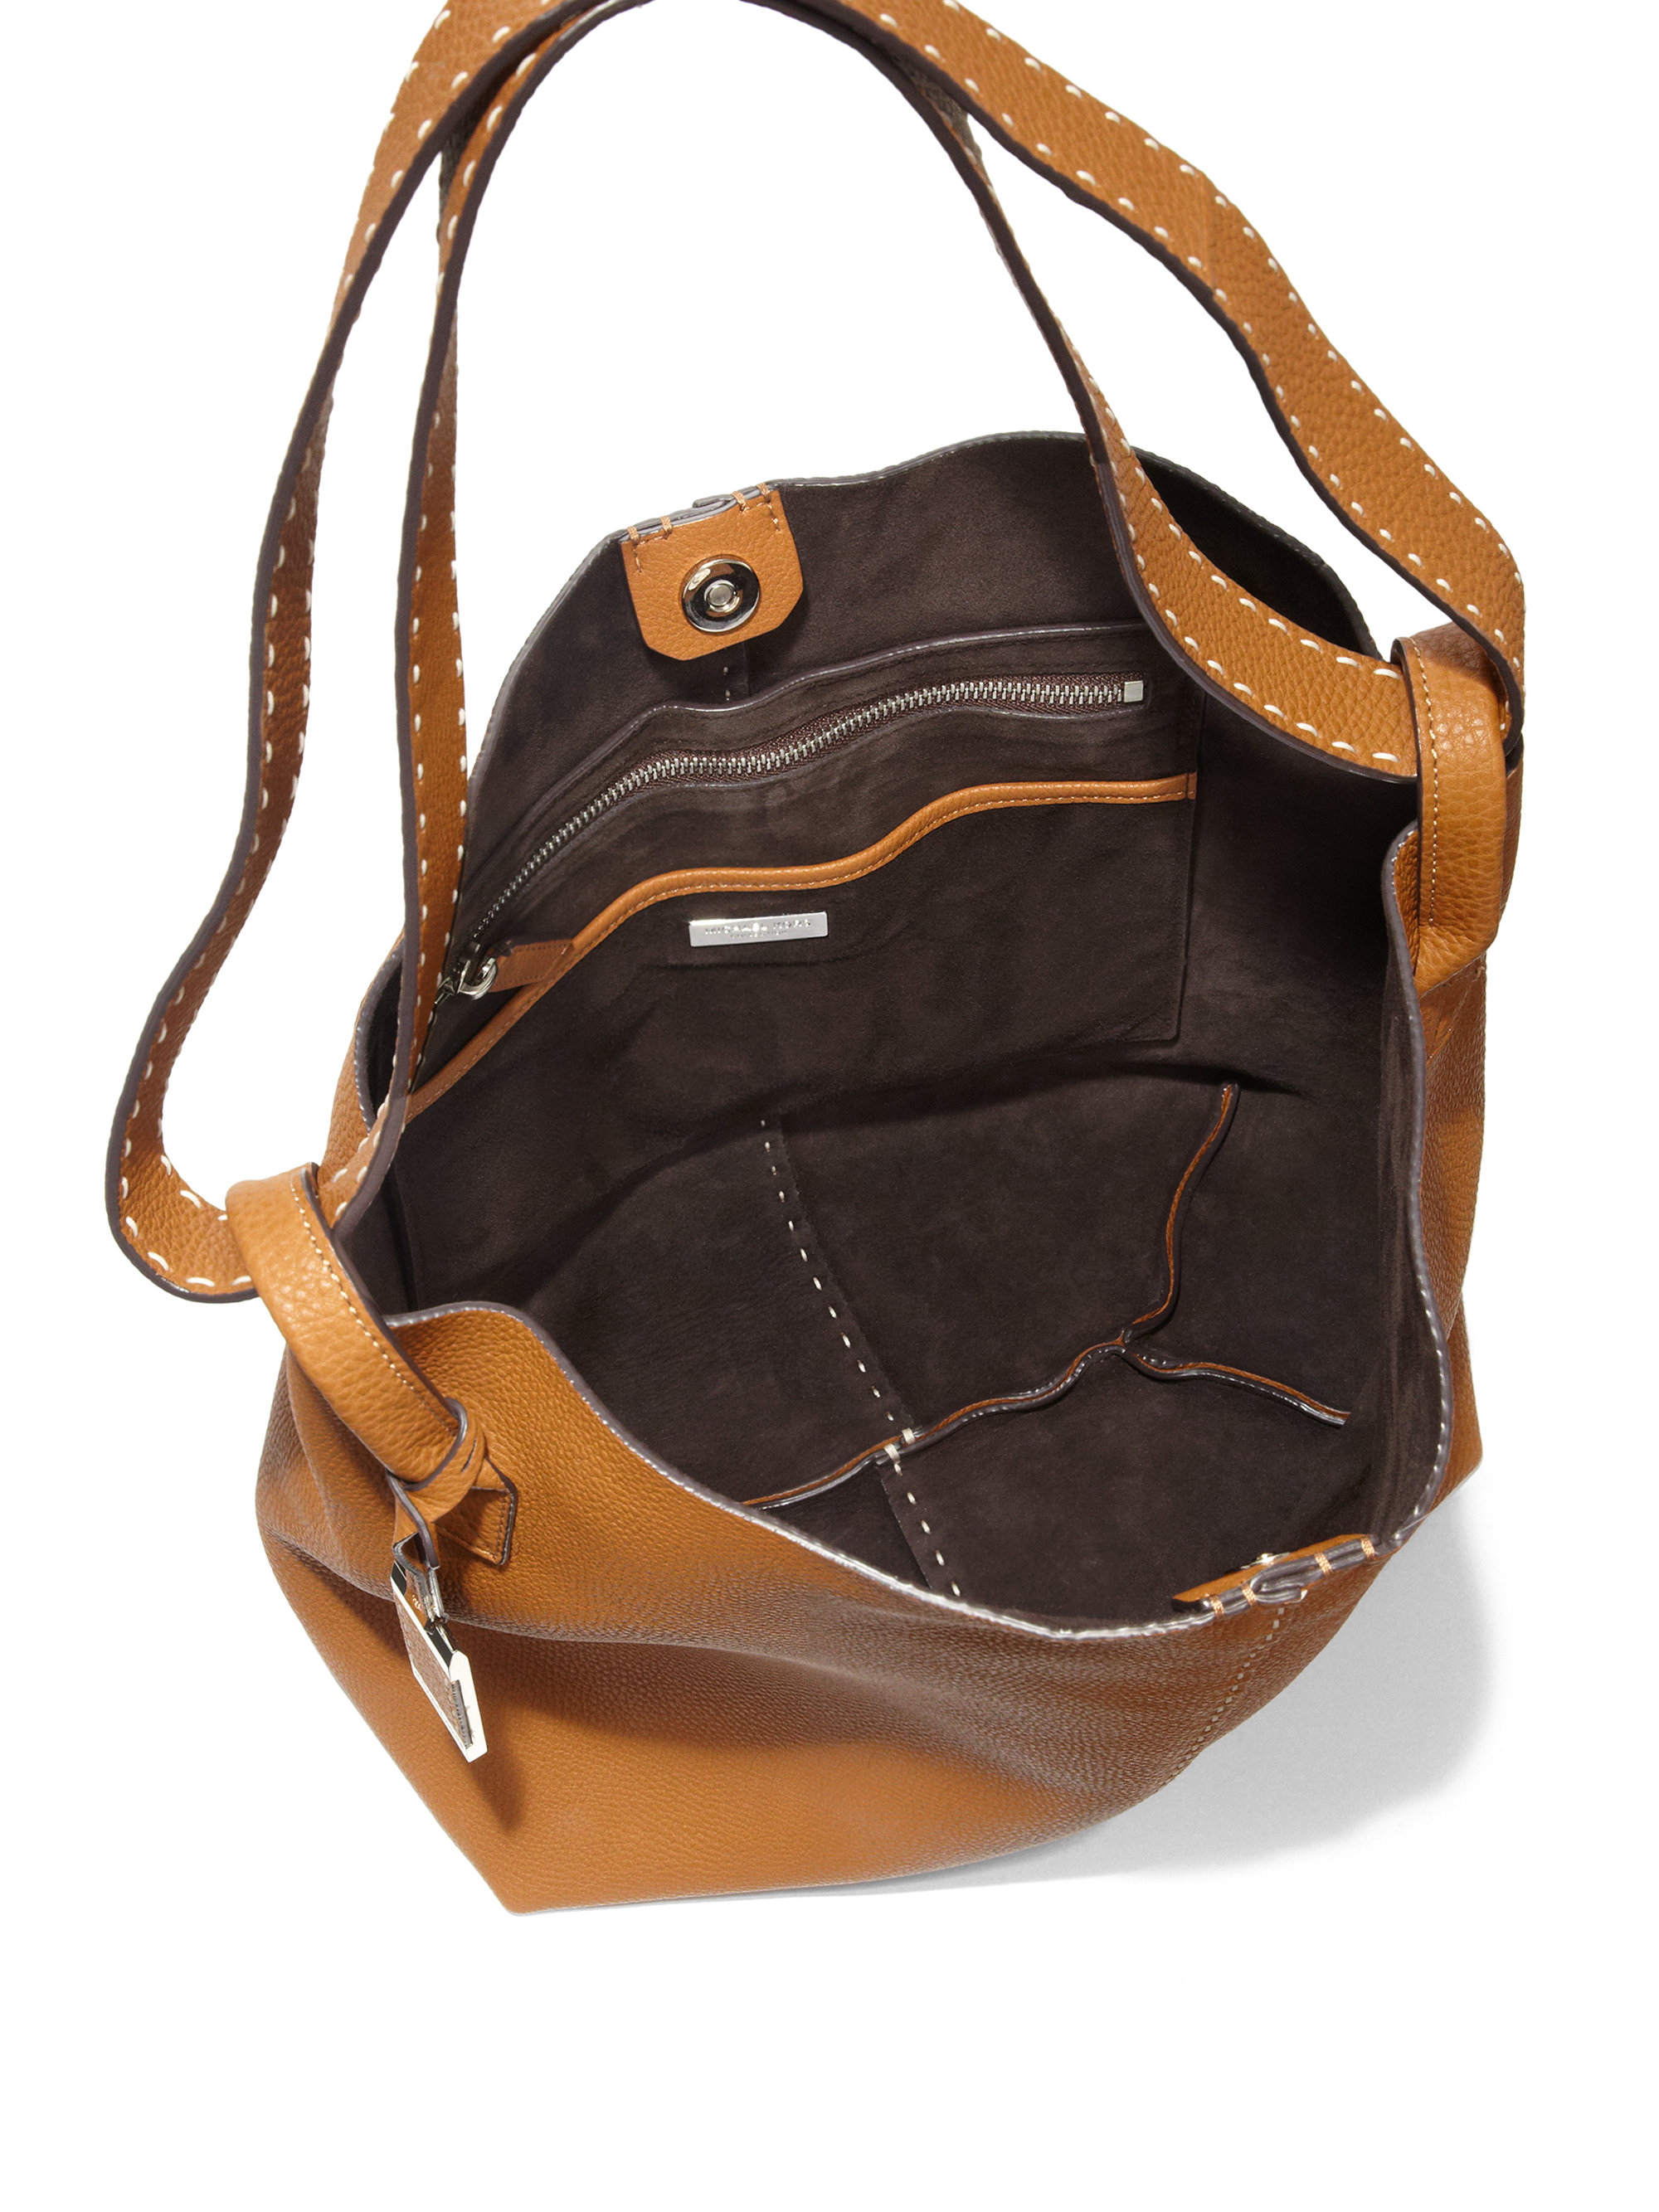 michael kors rogers large hobo bag in brown lyst. Black Bedroom Furniture Sets. Home Design Ideas